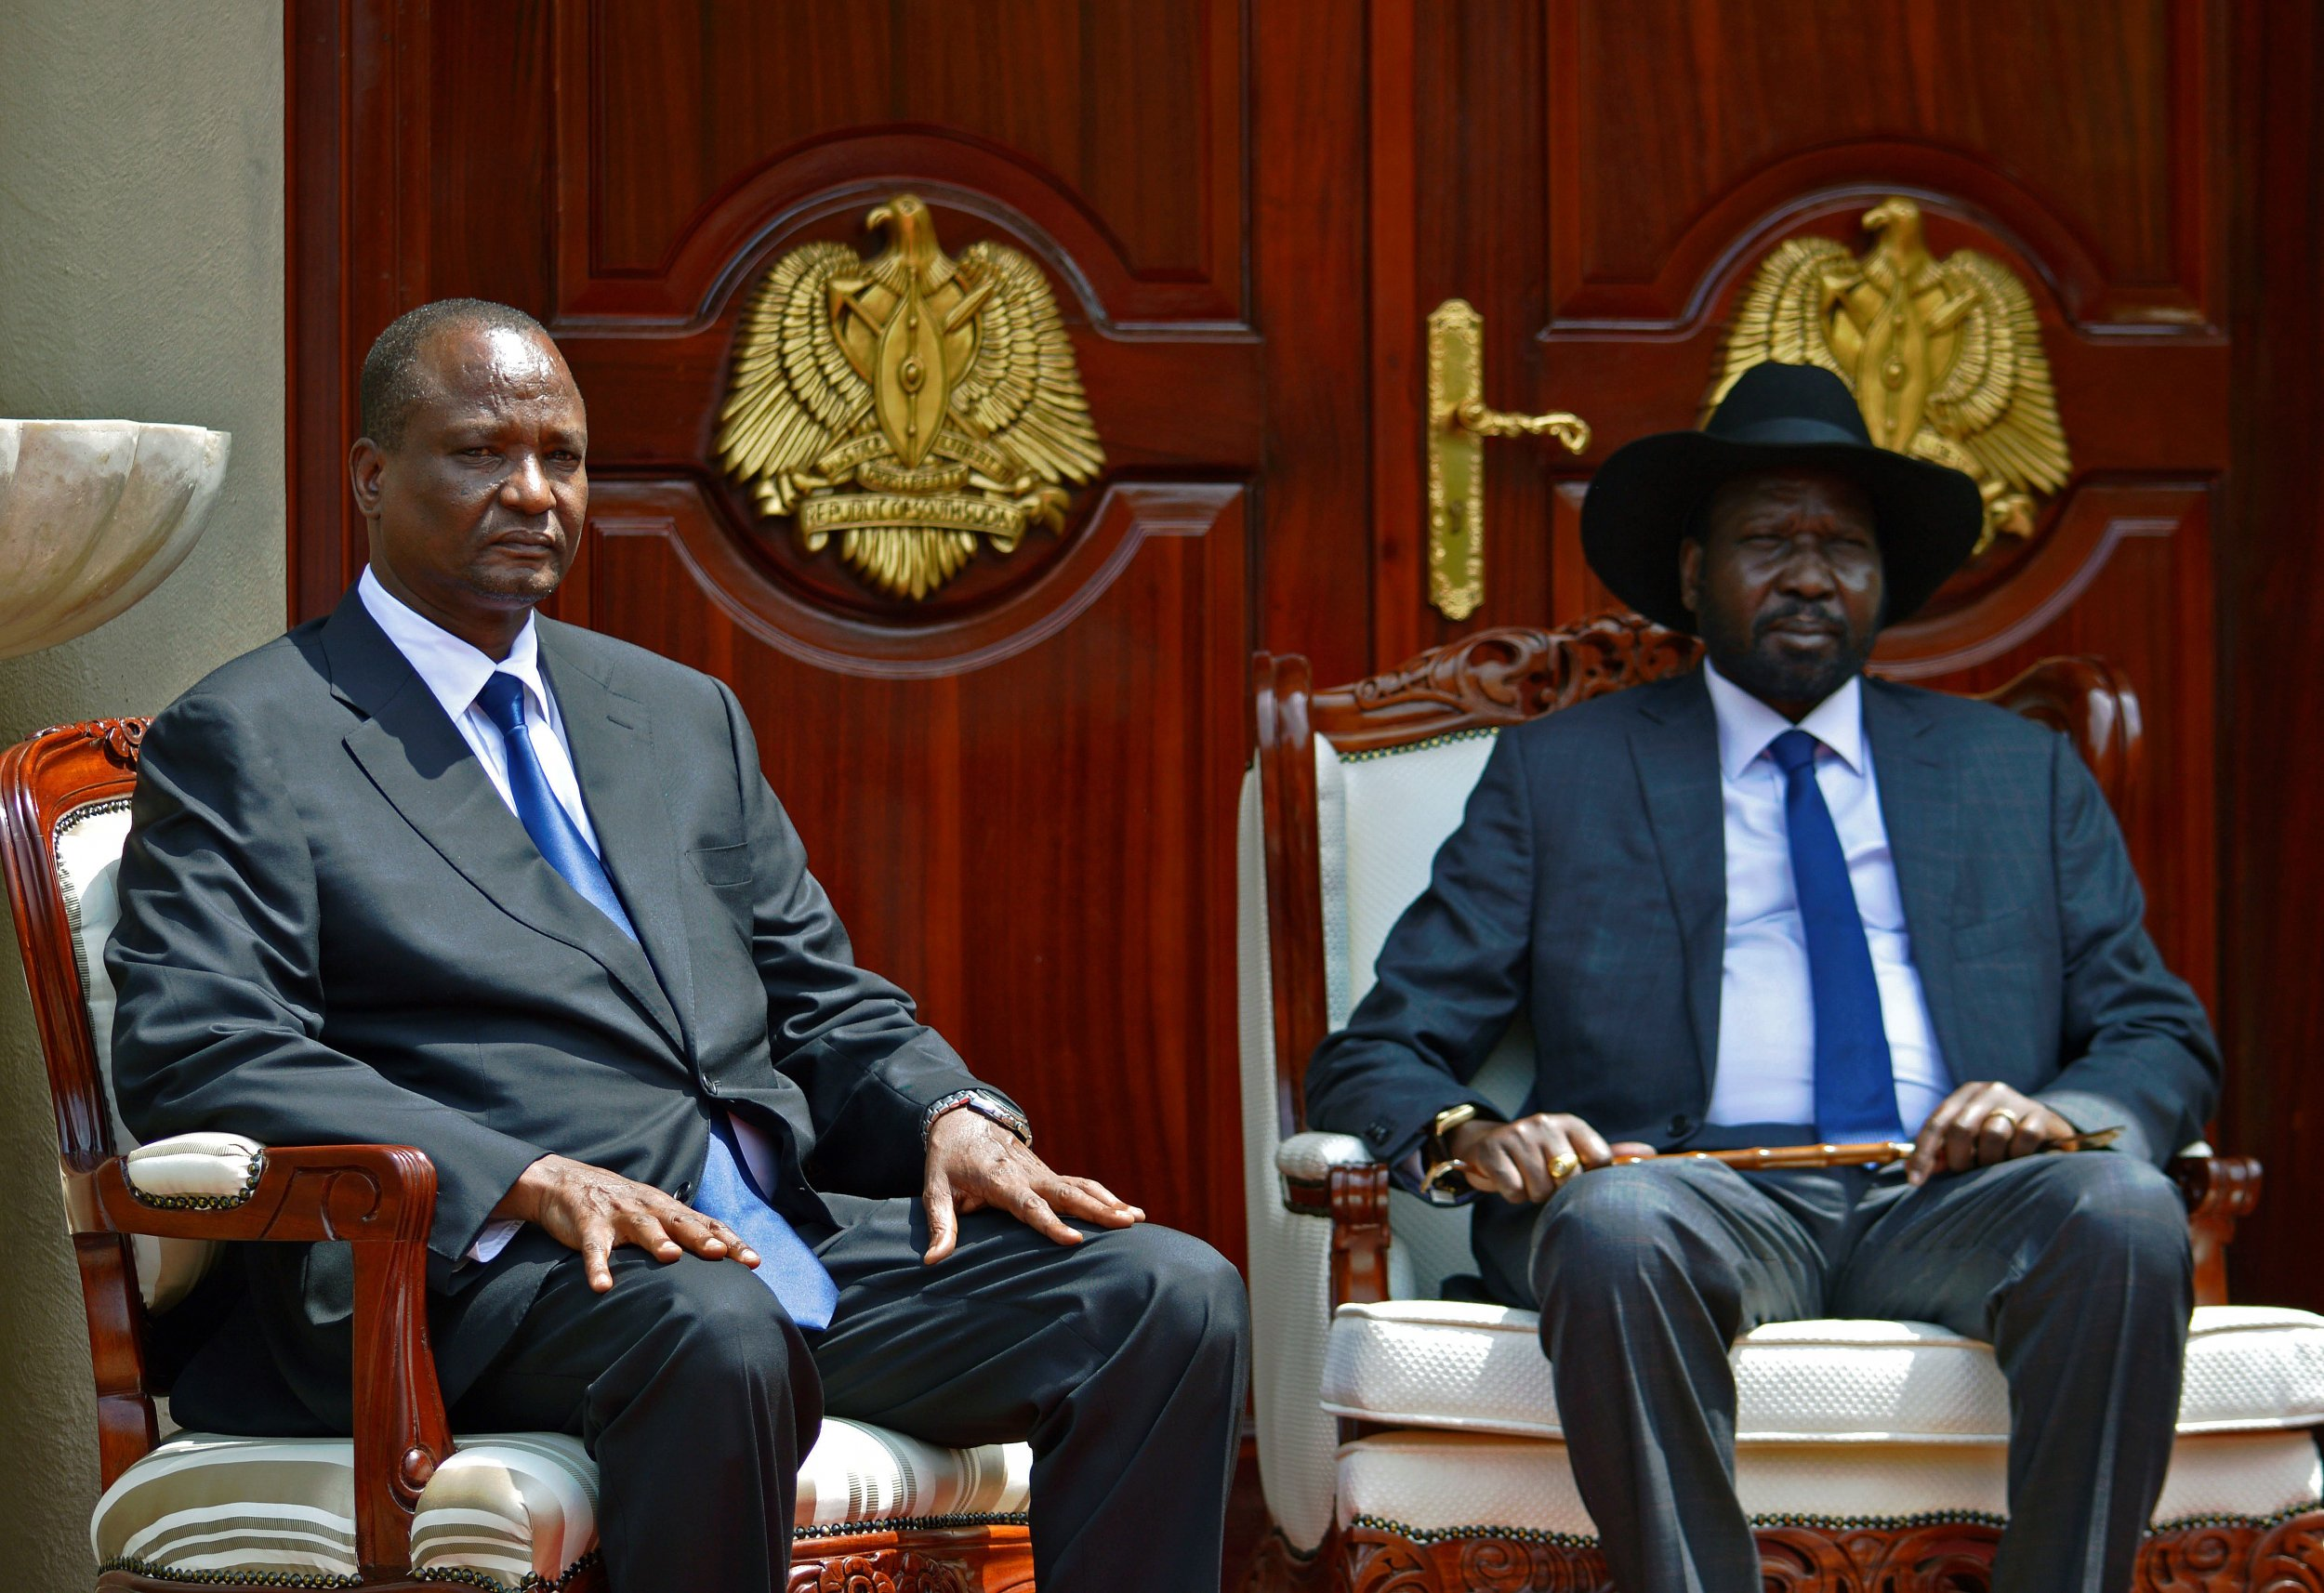 Taban Deng Gai and Salva Kiir